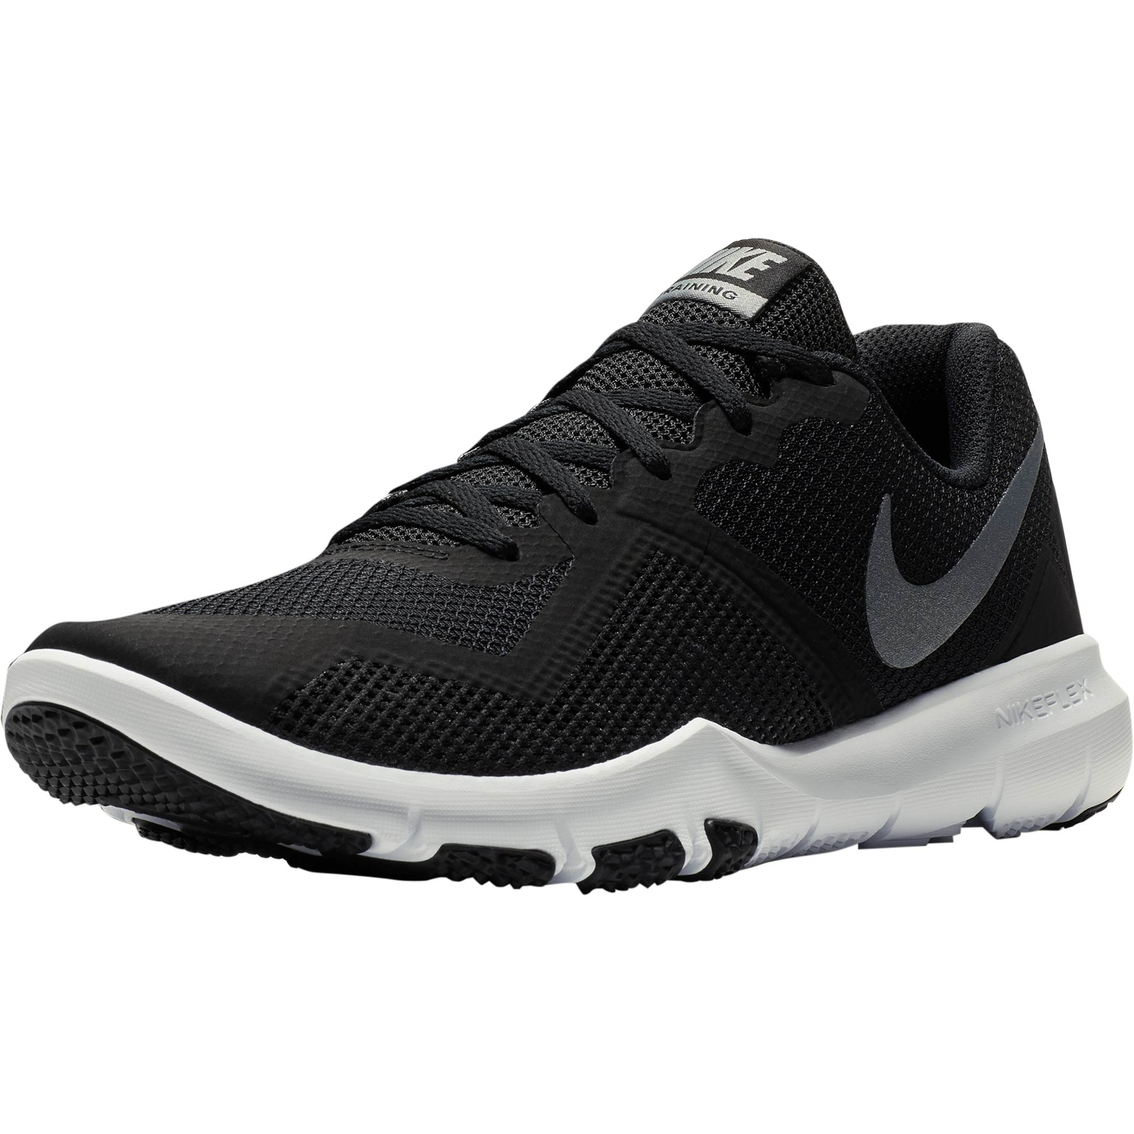 fbe5b0517438 Nike Men s Flex Control Ii Shoes